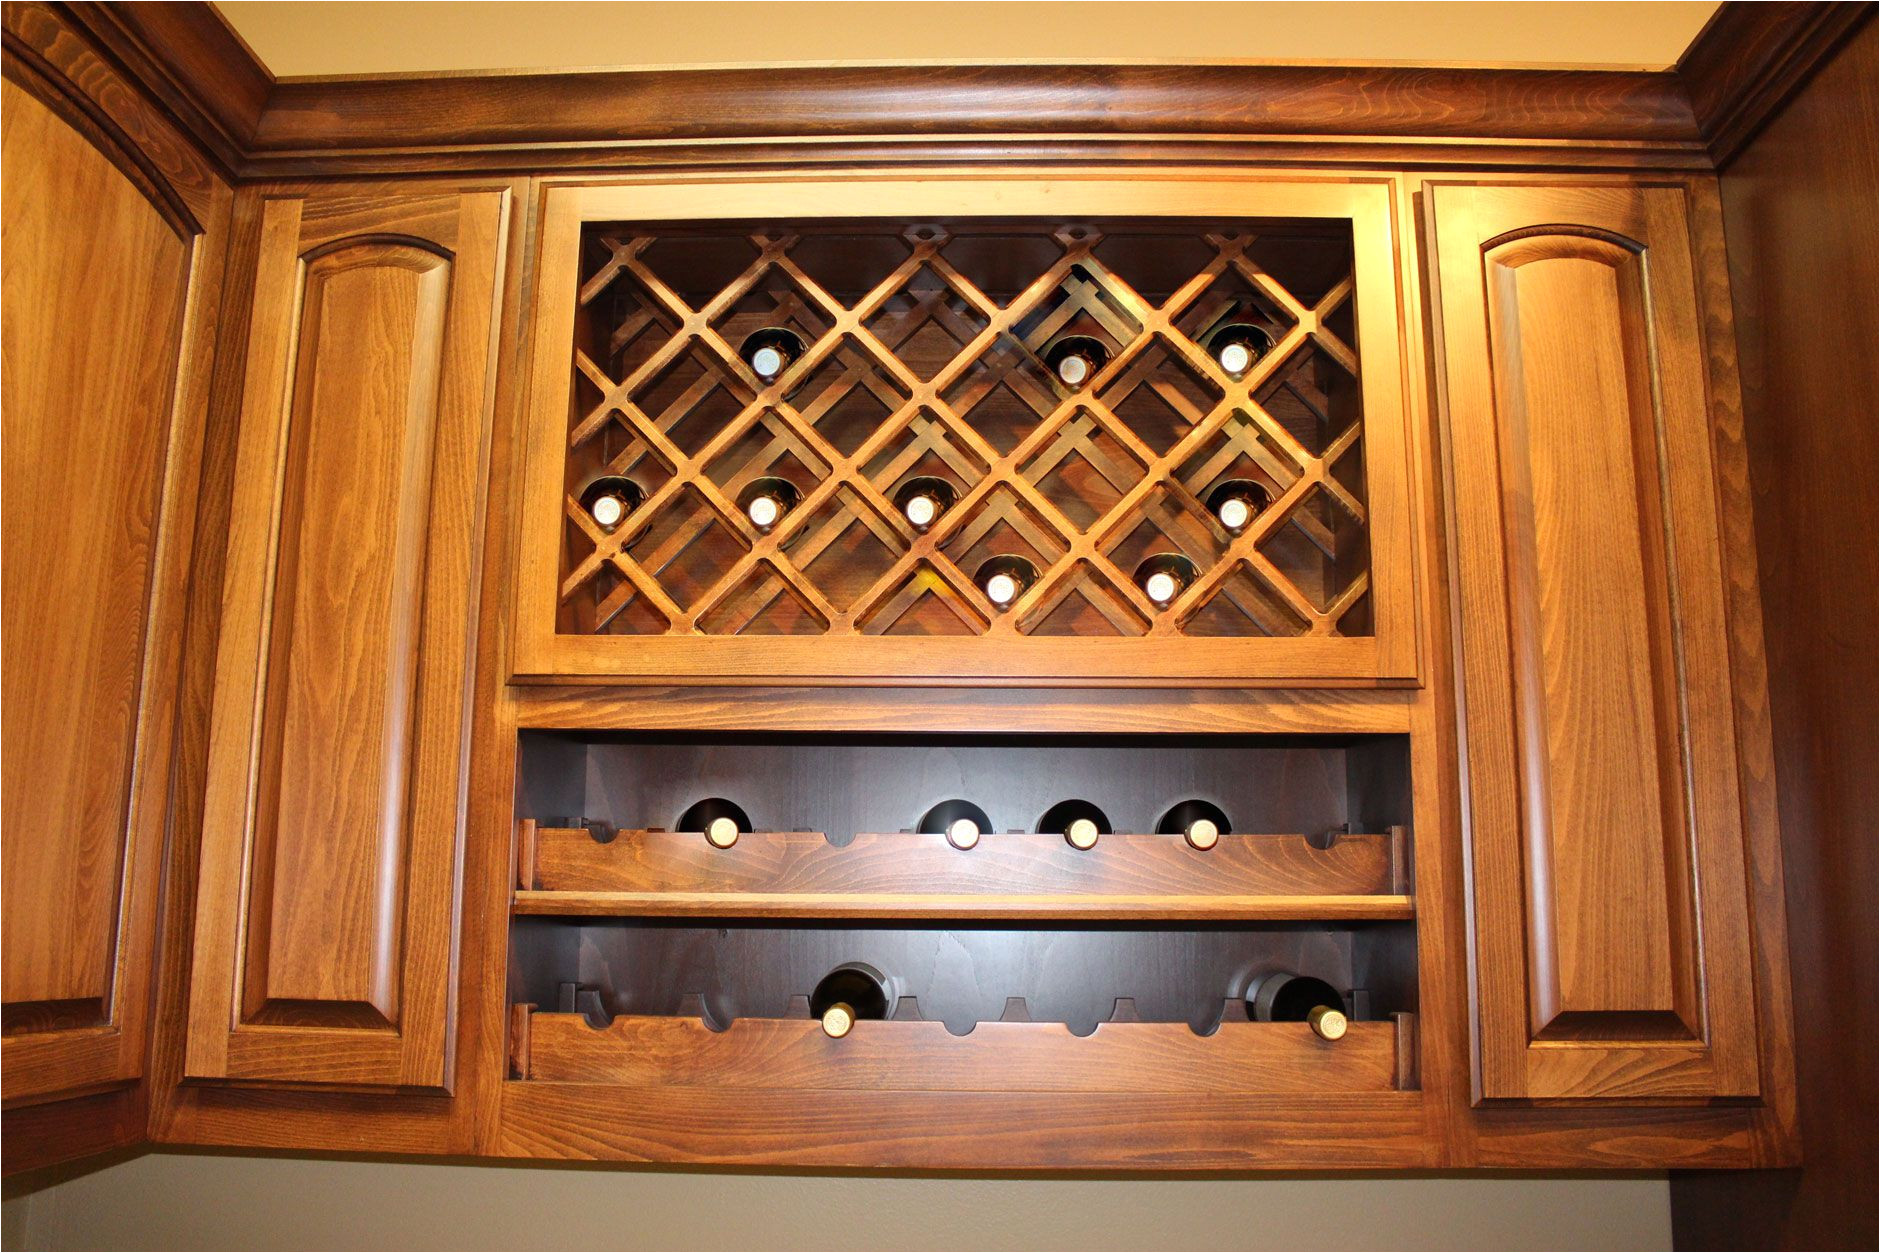 kitchen wine rack with lattice wine rack over scalloped wine rack by burrows cabinets burrowscabinets com